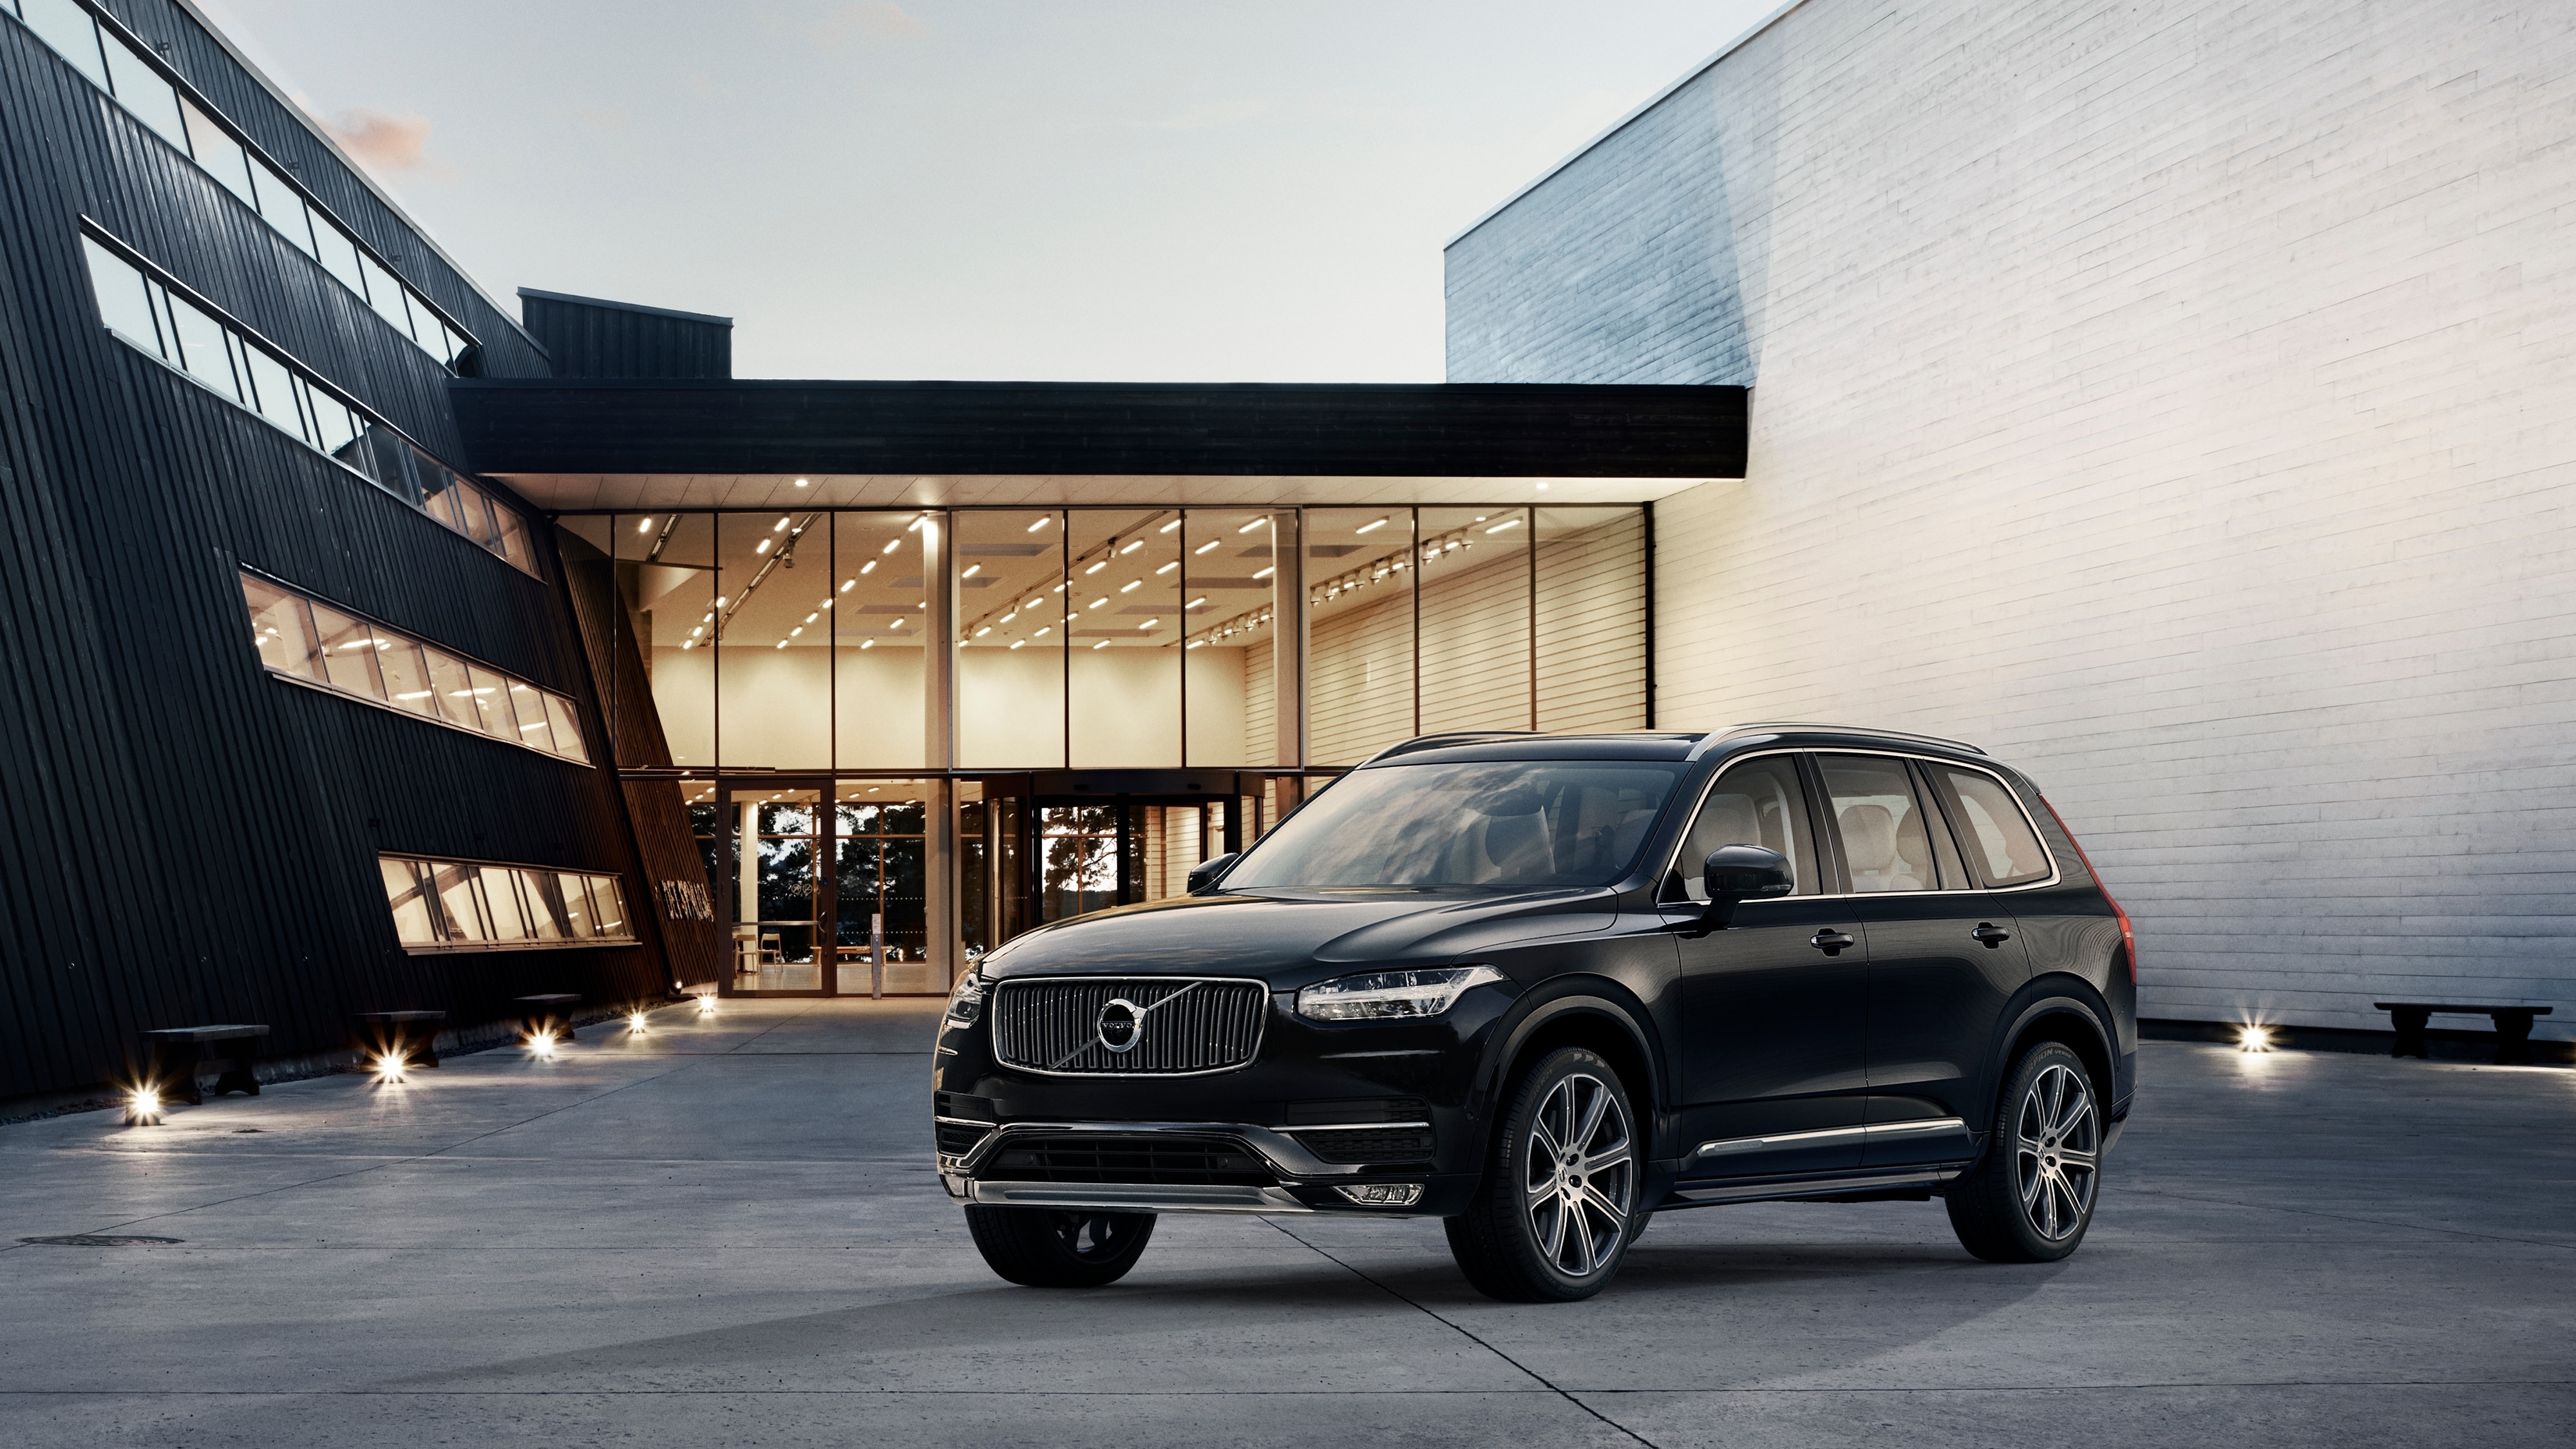 تصميم فولفو  XC90 Inscription مركونة أمام مبنى حديث